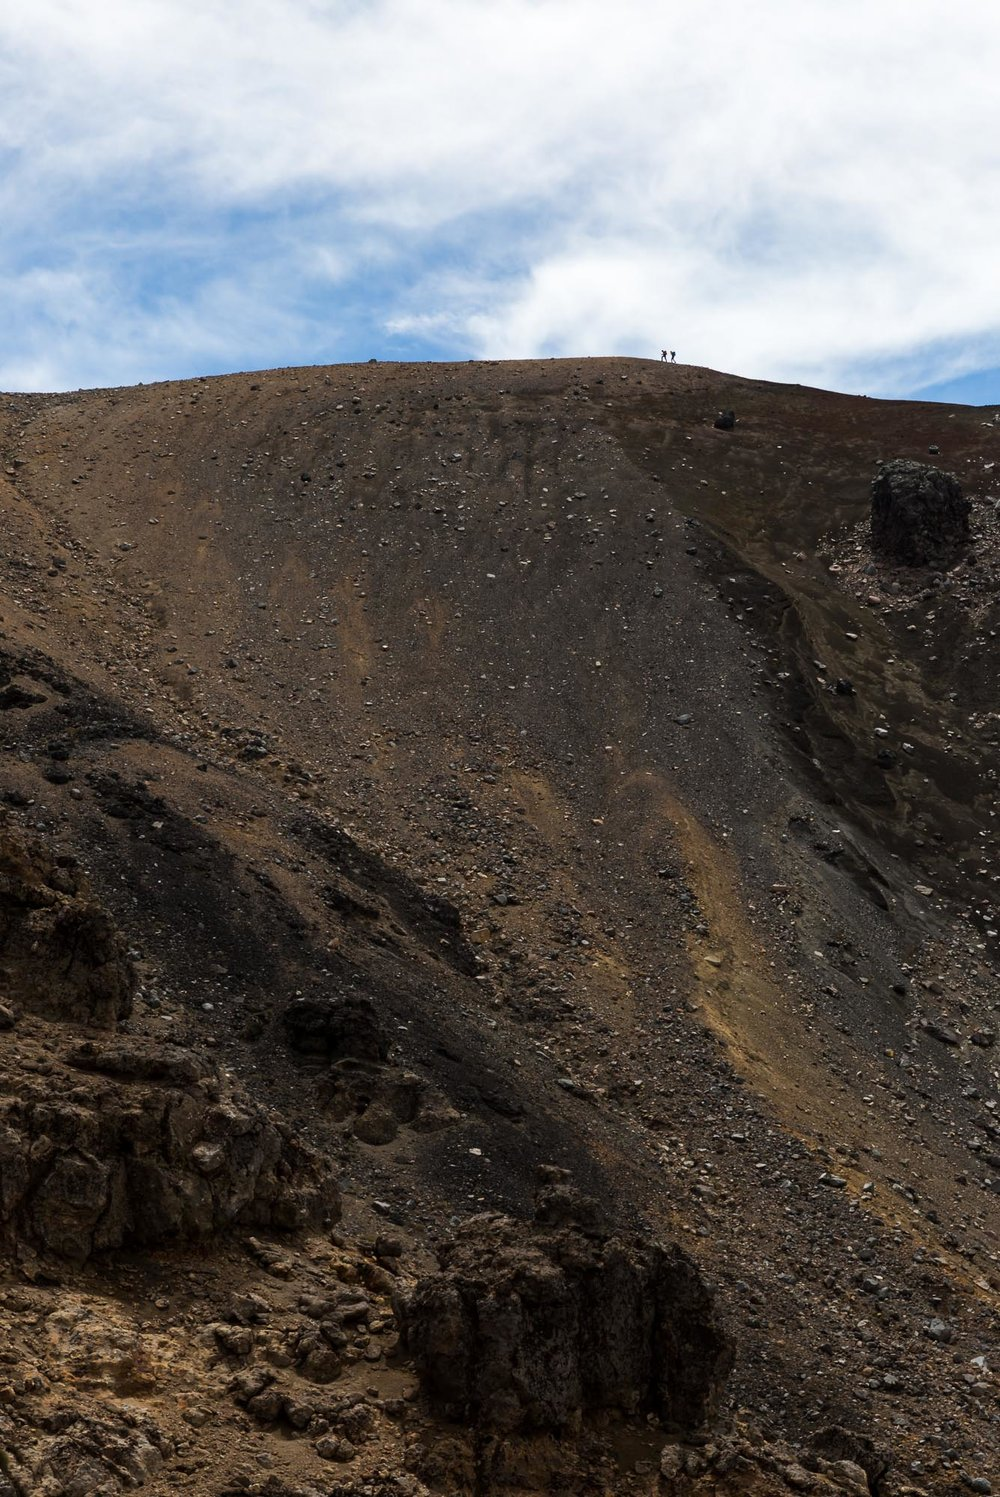 2017_01_19_ben_kepka_cultured_kiwi_Tongariro_Alpine_Crossing-15.jpg